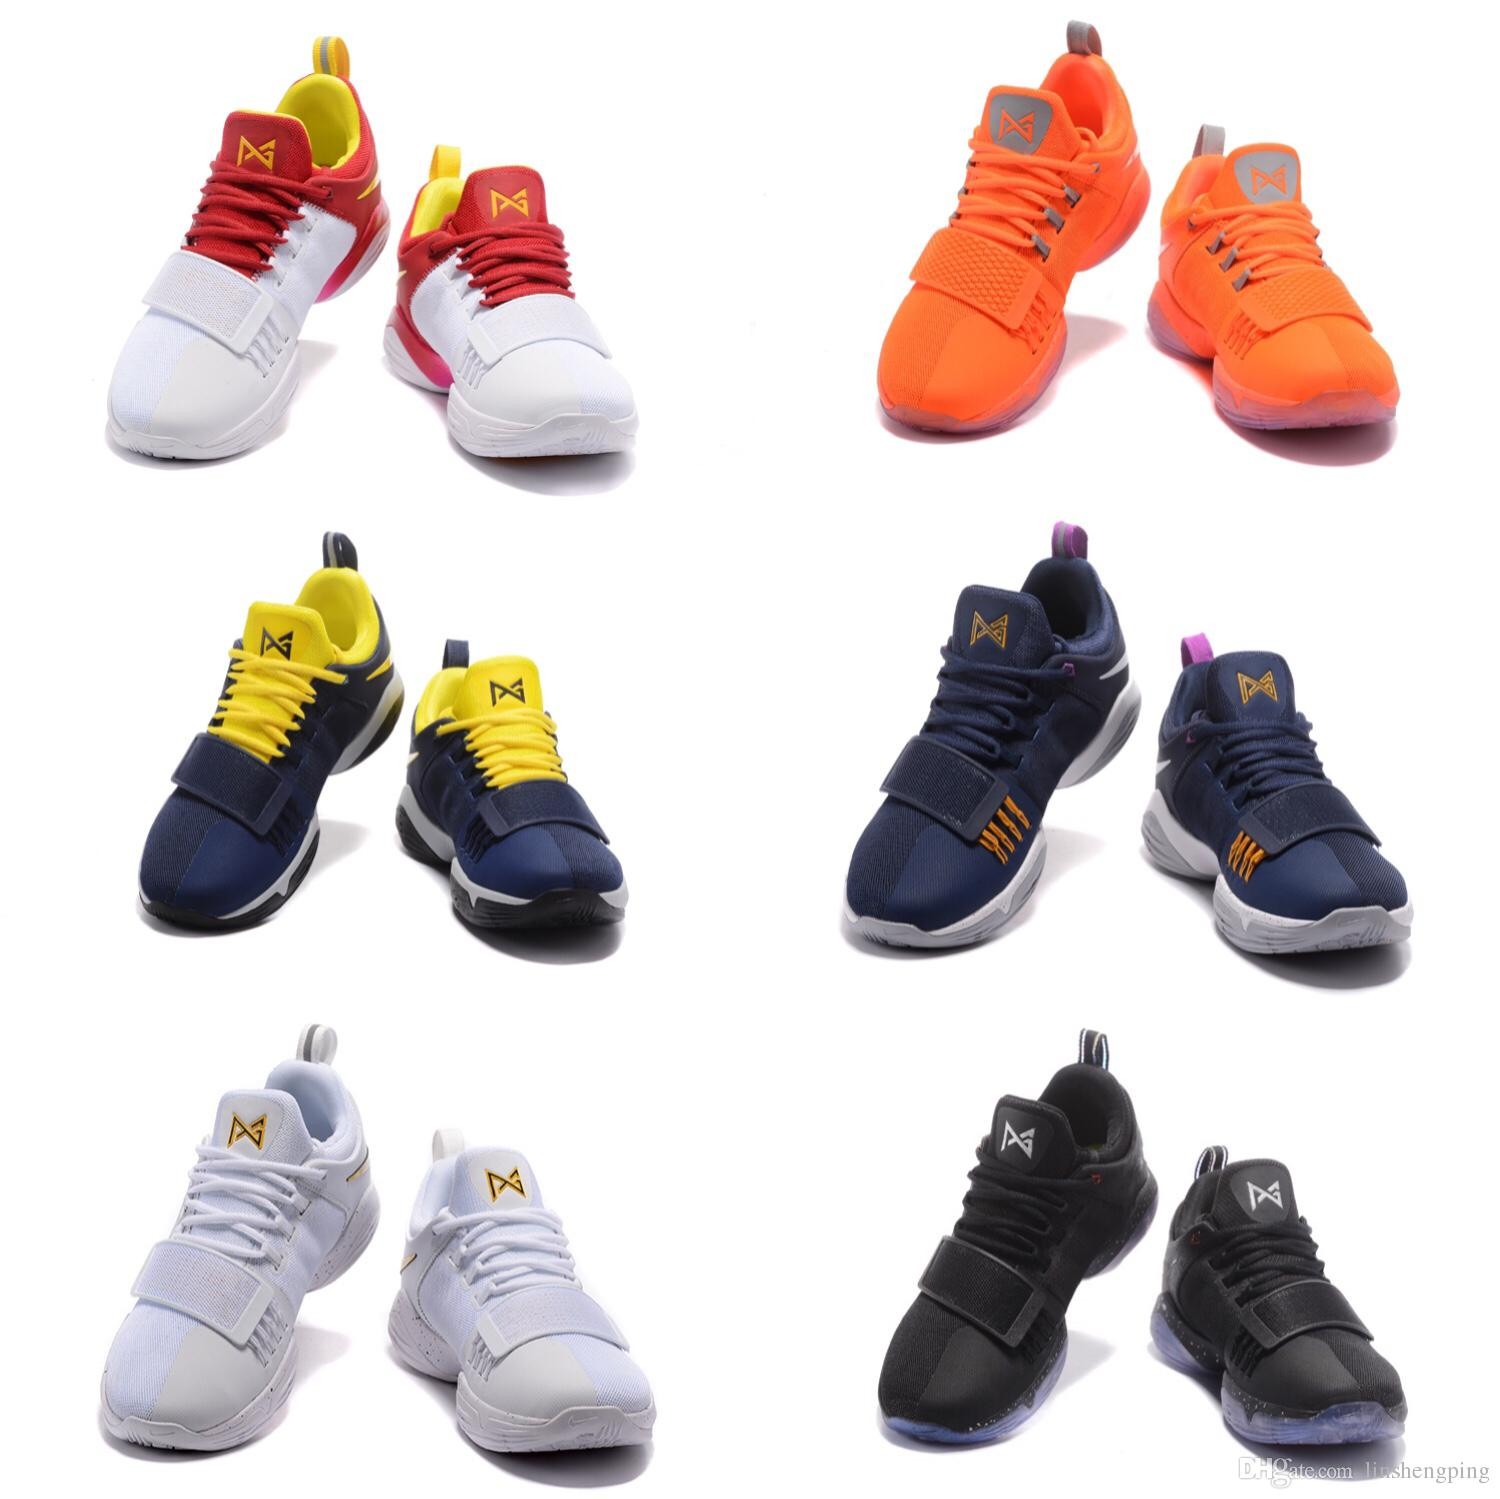 paul george shoes kids price